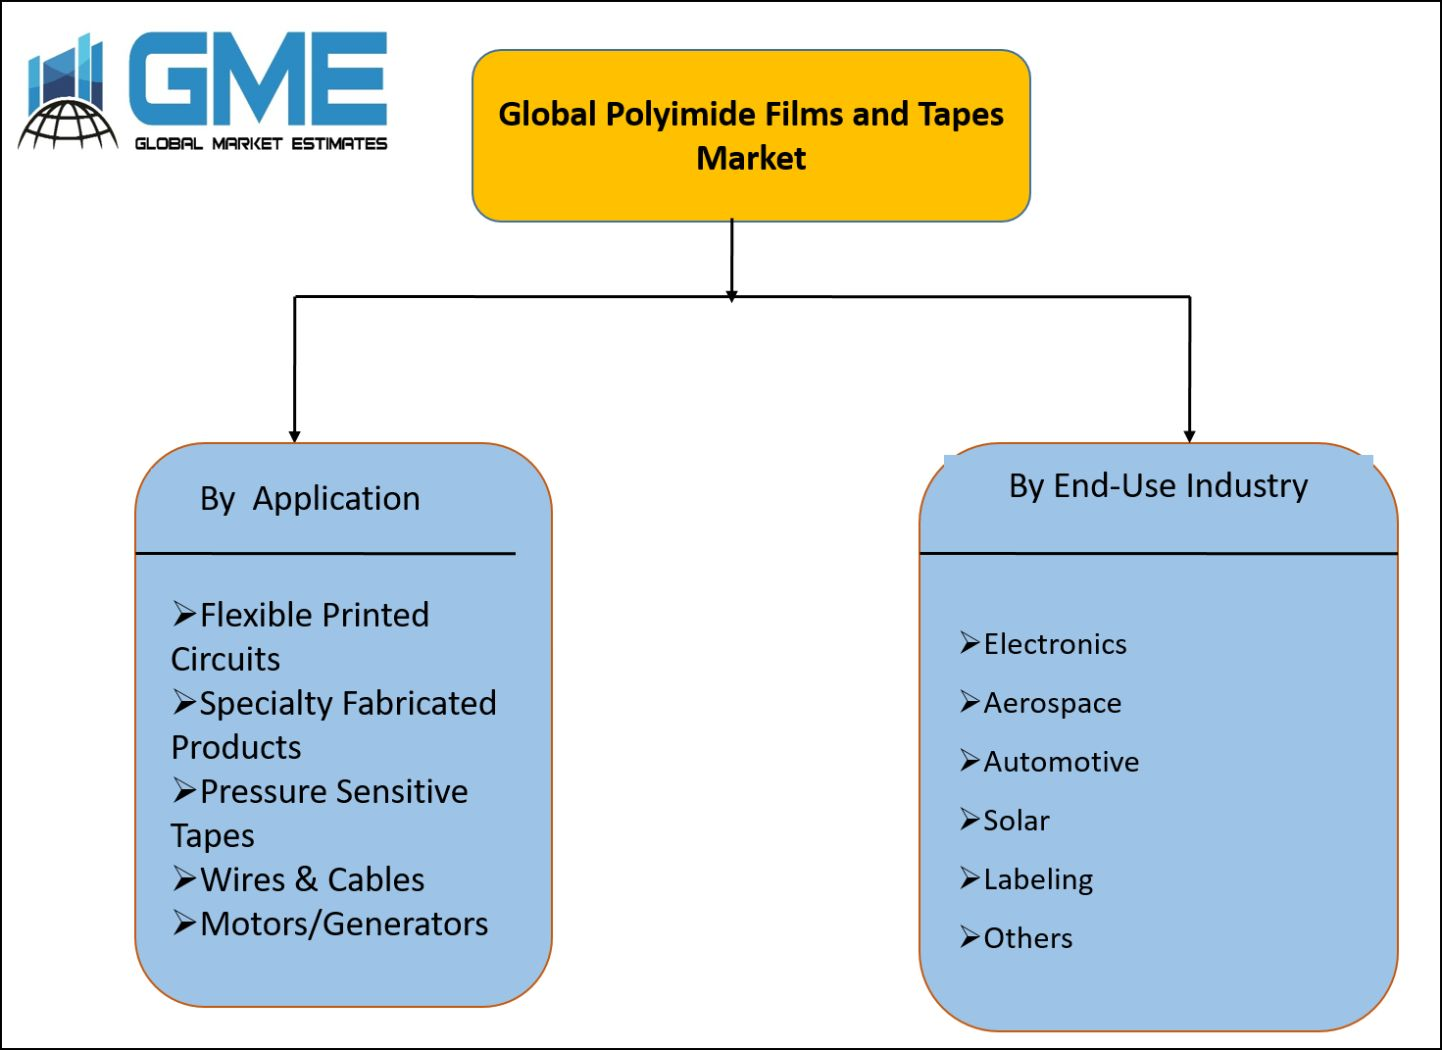 Polyimide Films and Tapes Market Segmentation